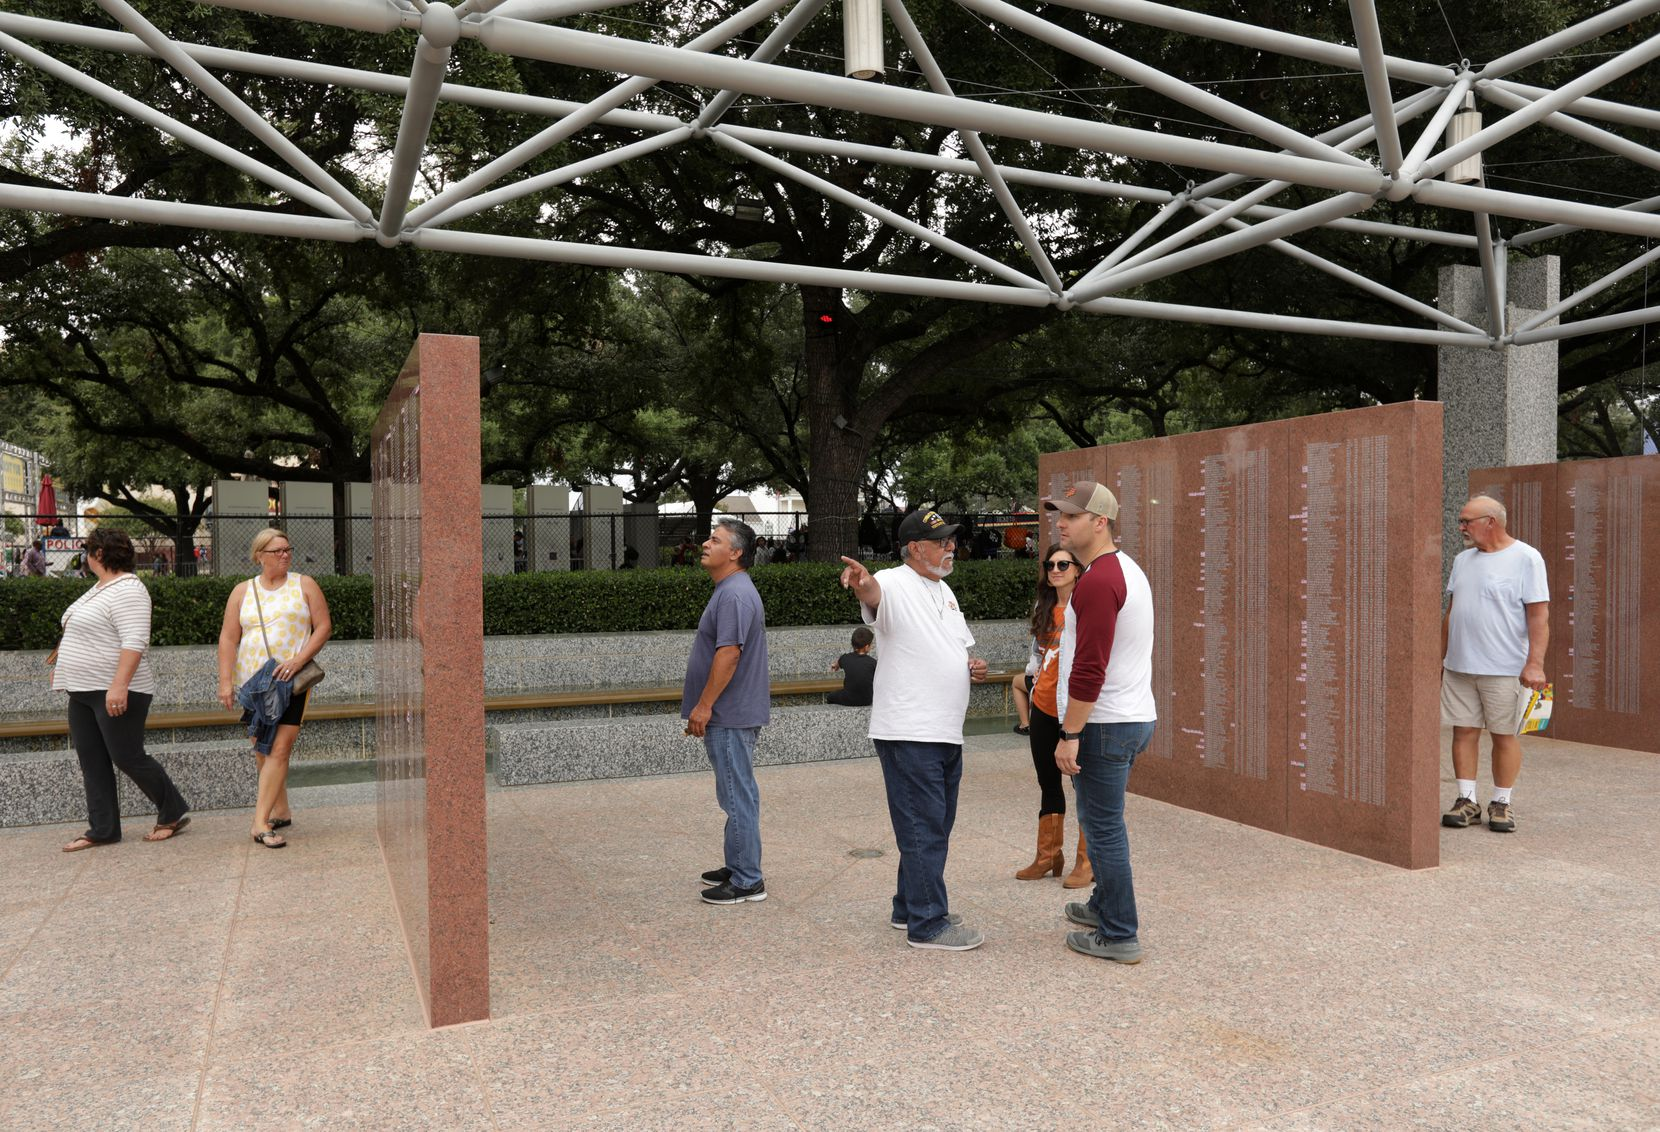 Vietnam veteran Tommy Acosta, center, talks to first-time fairgoers Ashley Servi and Chad Kozar at the memorial, which is informally called the Texas Wall. The 30-year-old Kozar says he feels a special kinship to all Vietnam veterans because, as a Marine, he served in Afghanistan.